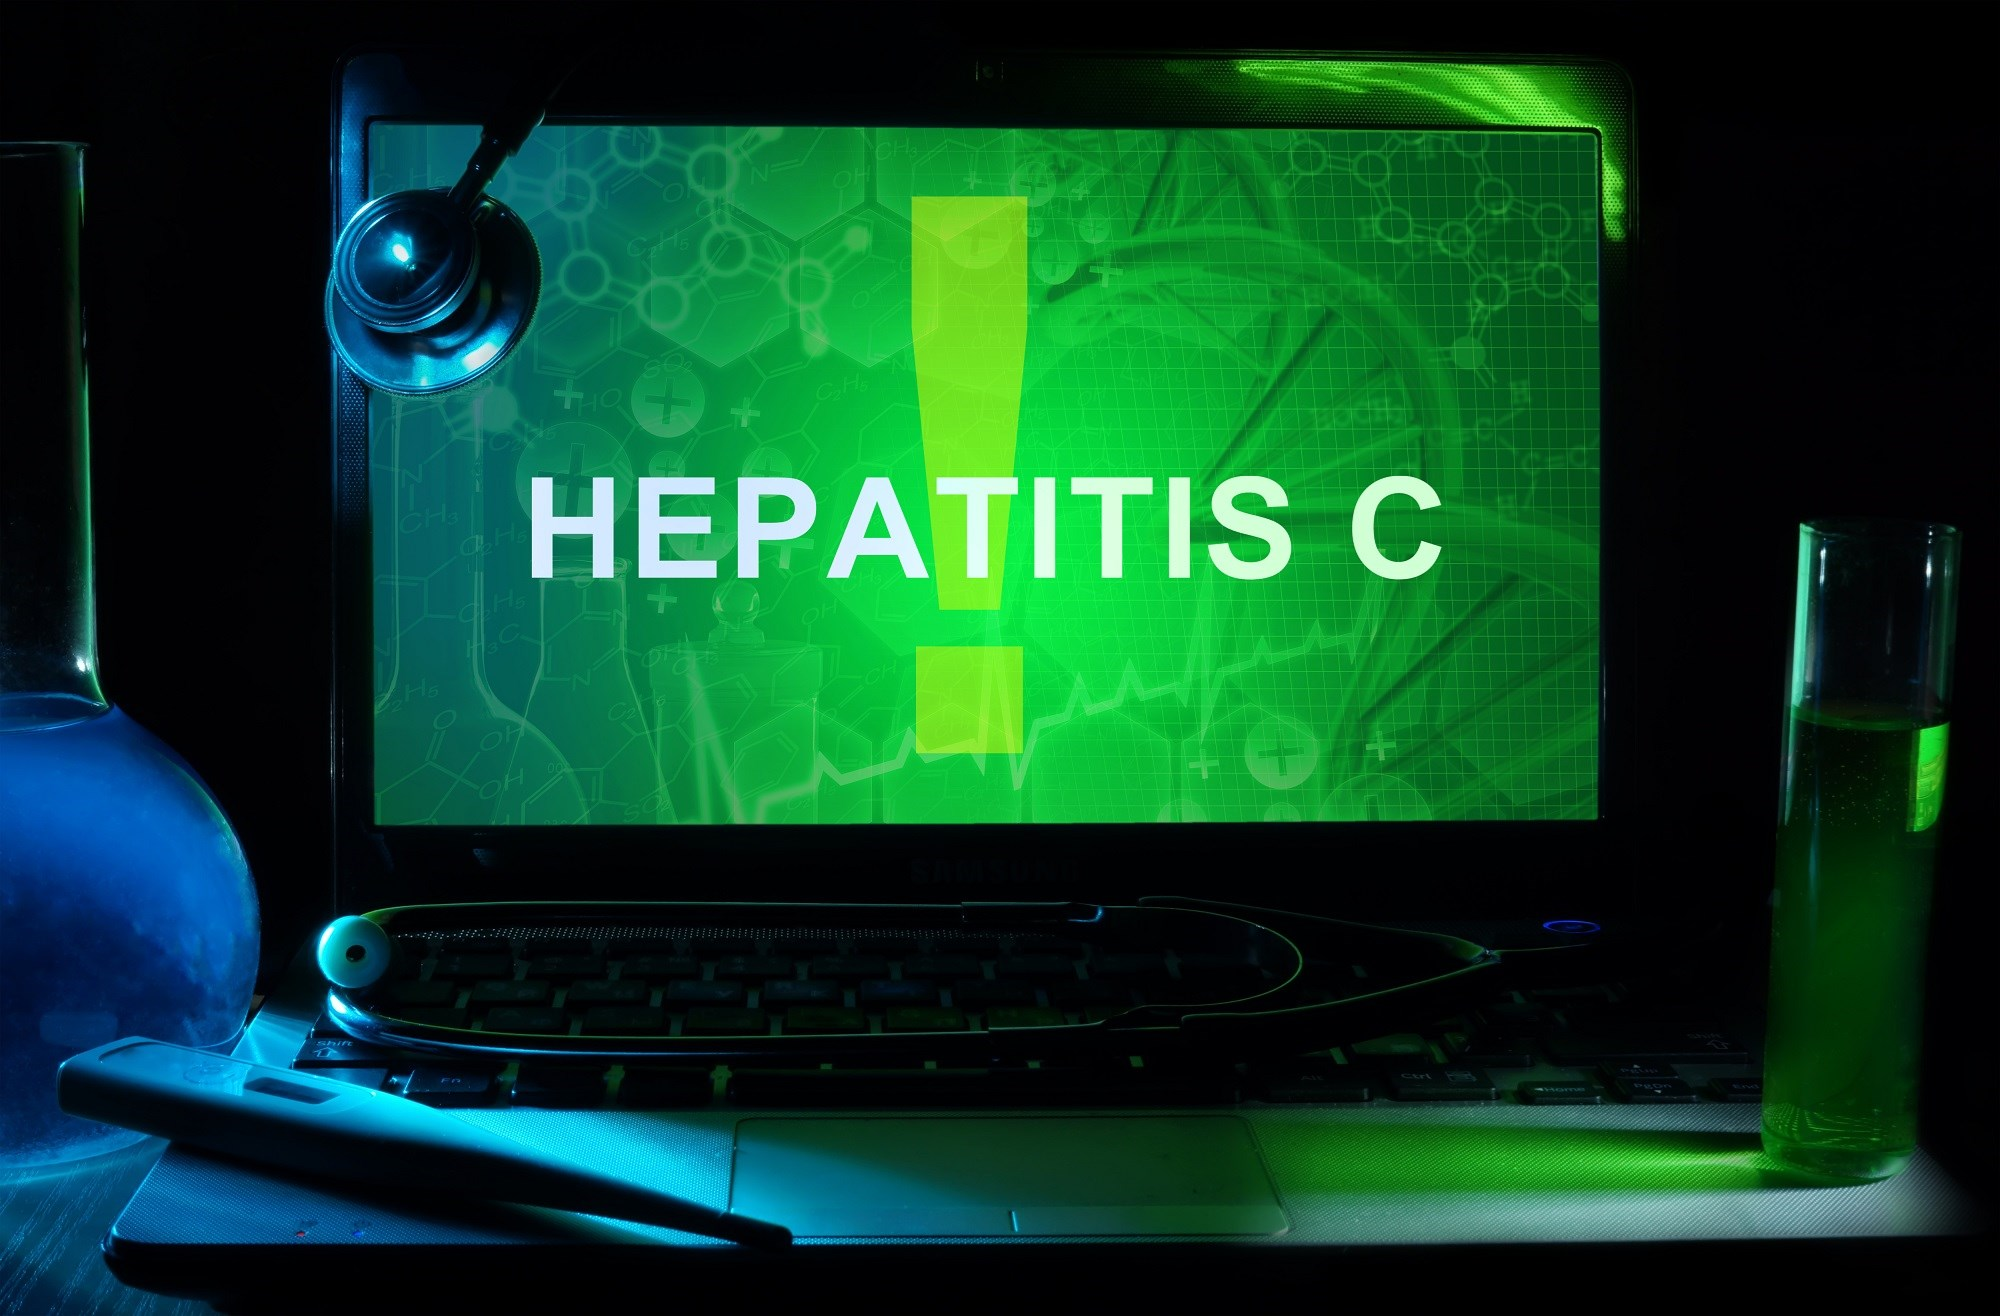 Children infected with hepatitis C face environmental, provider, and system-based challenges, such as underreporting.